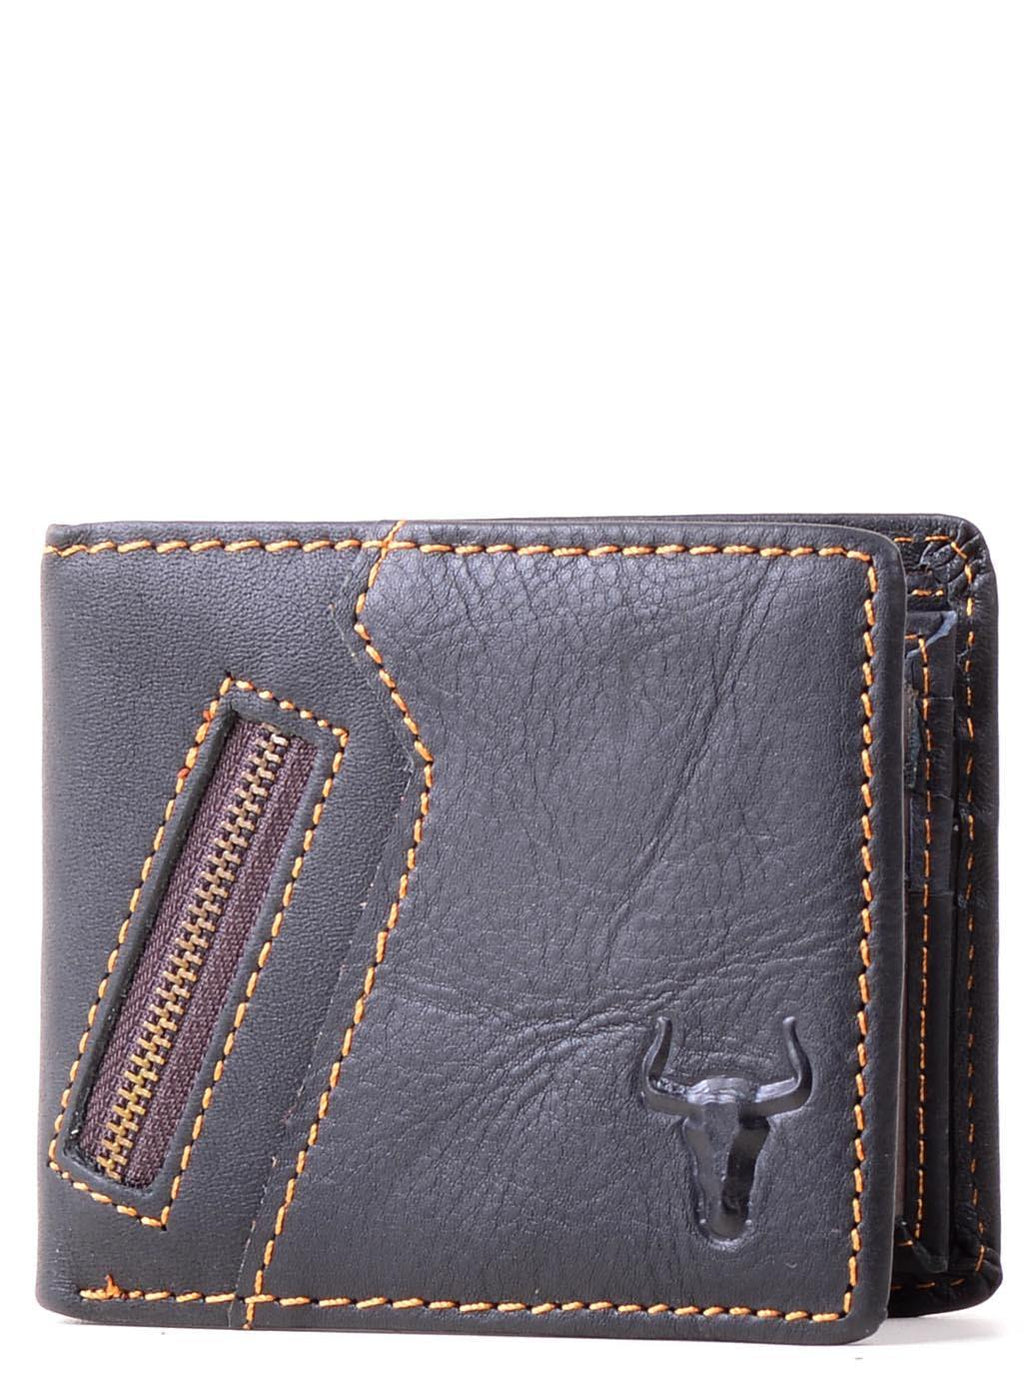 EthniCache Wallet Ritzy Handmade Pure Leather Wallet